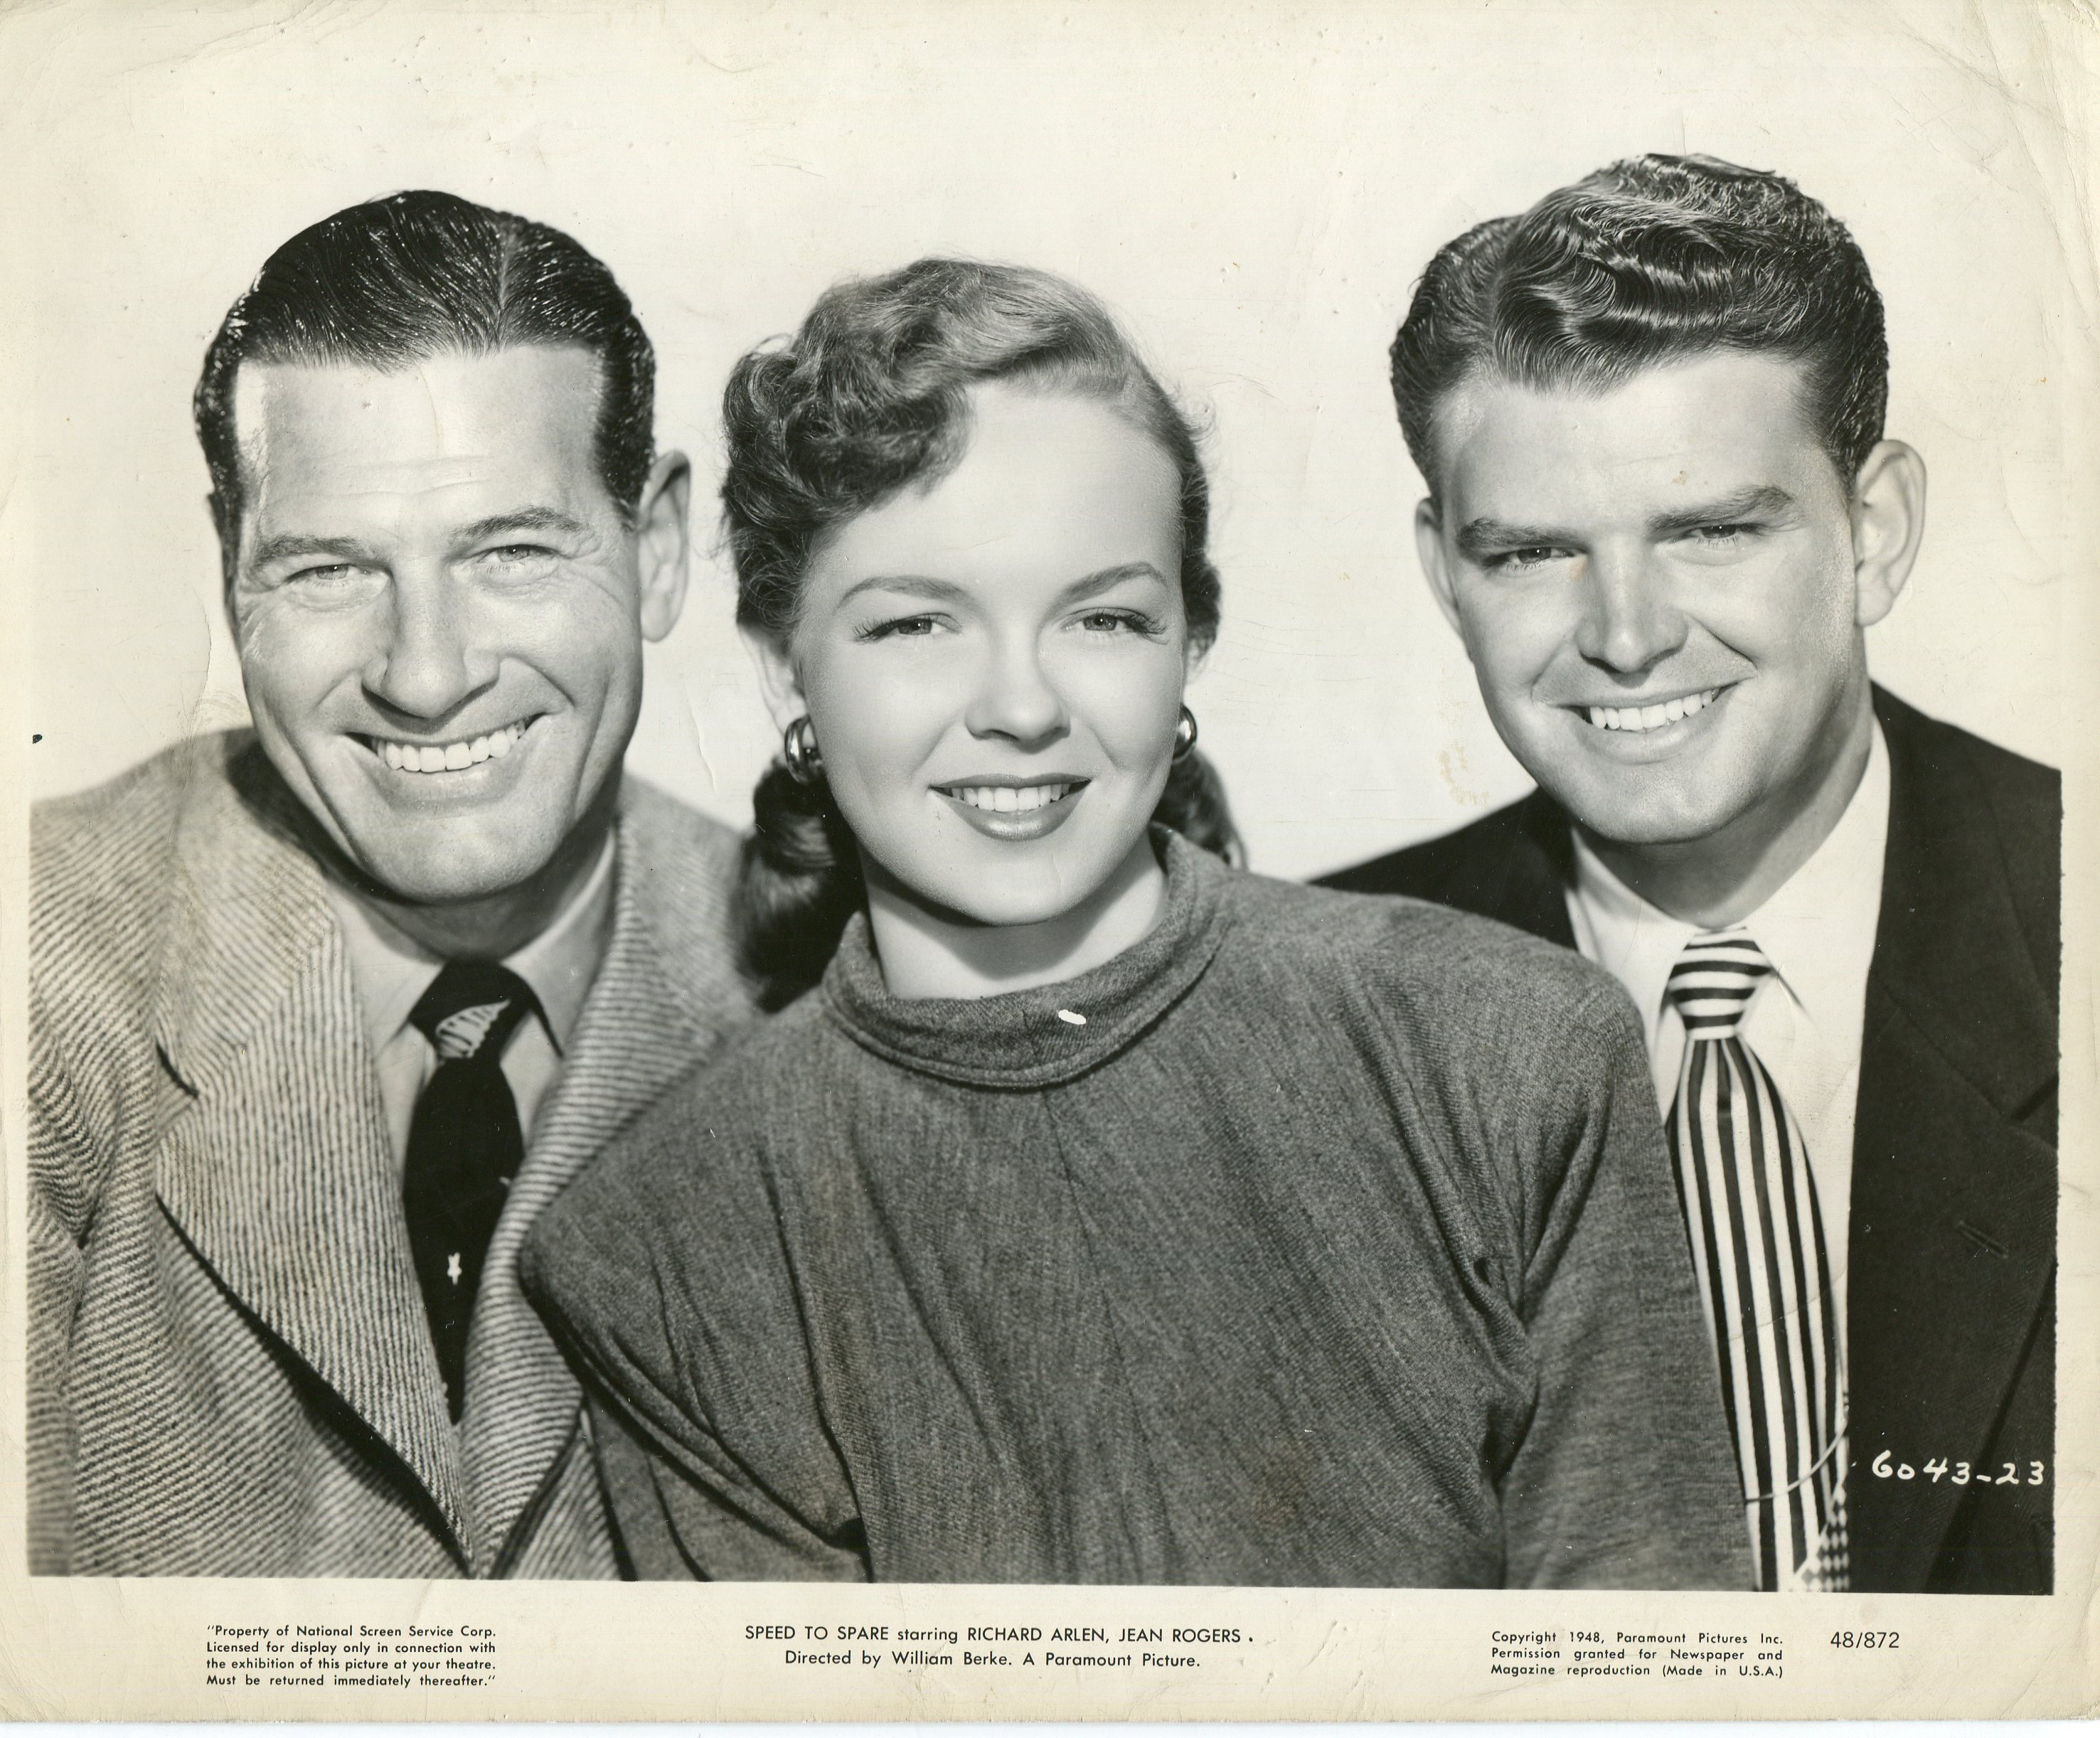 Richard Arlen, Nanette Parks, and Pat Phelan in Speed to Spare (1948)